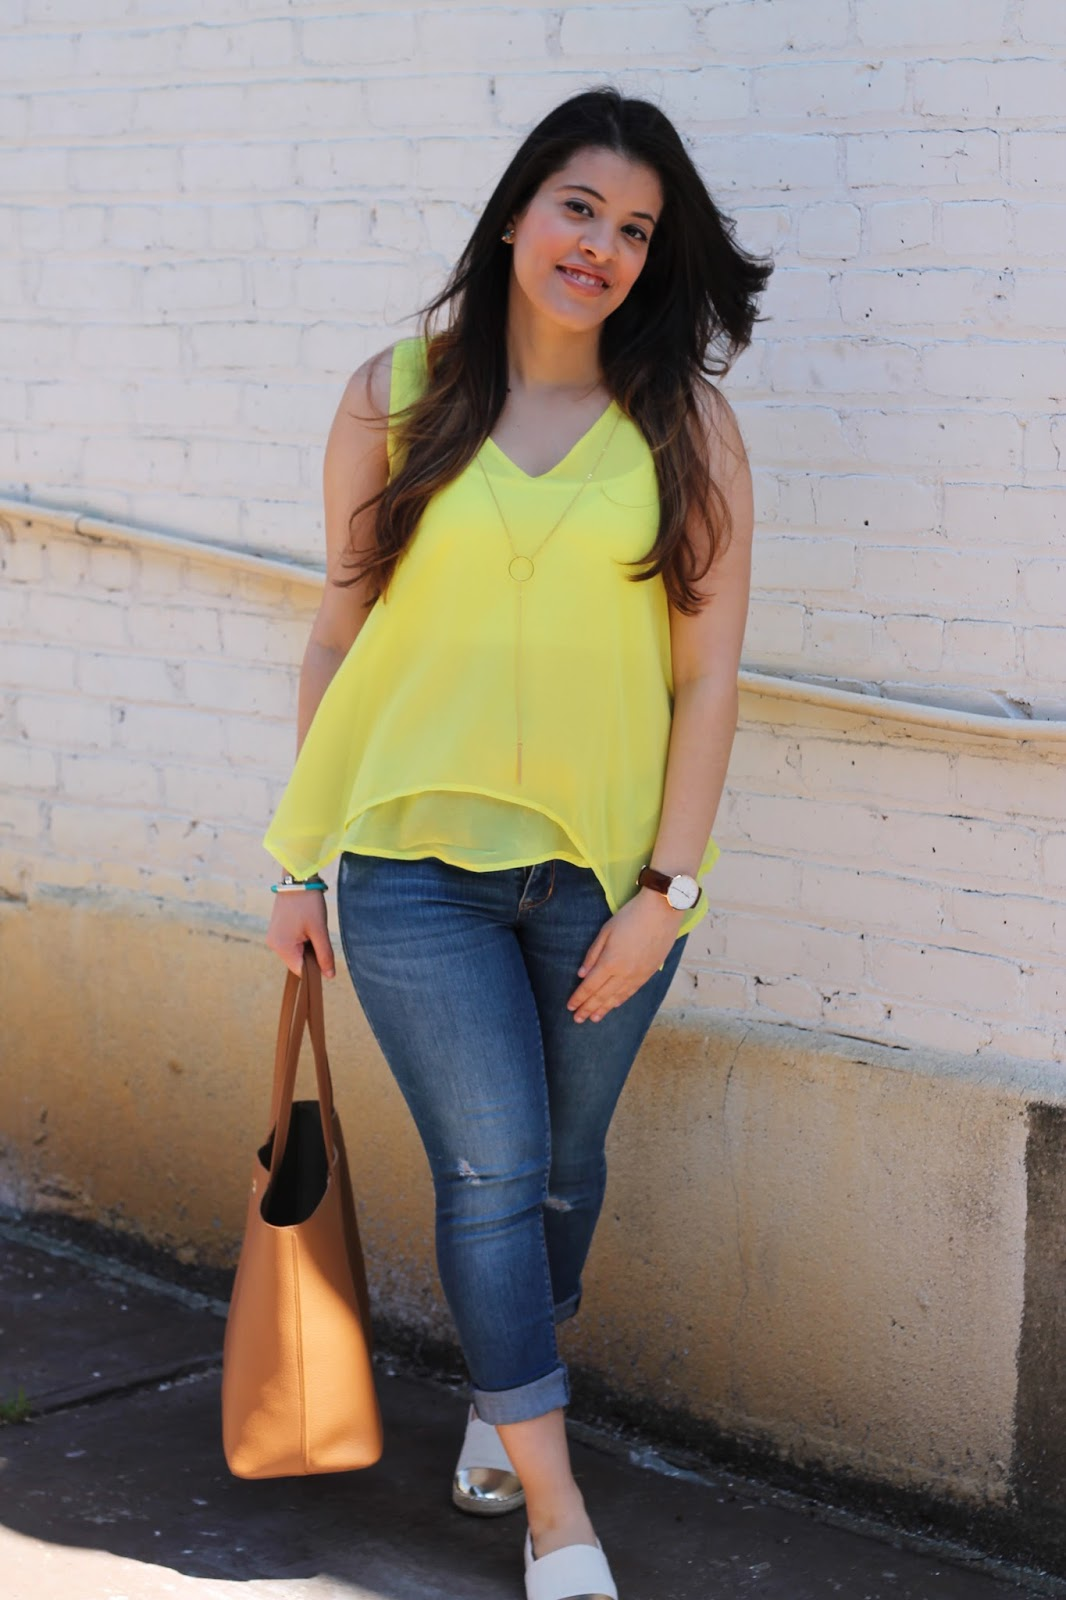 Bright Yellow Chiffon Top and Distressed Jeans.